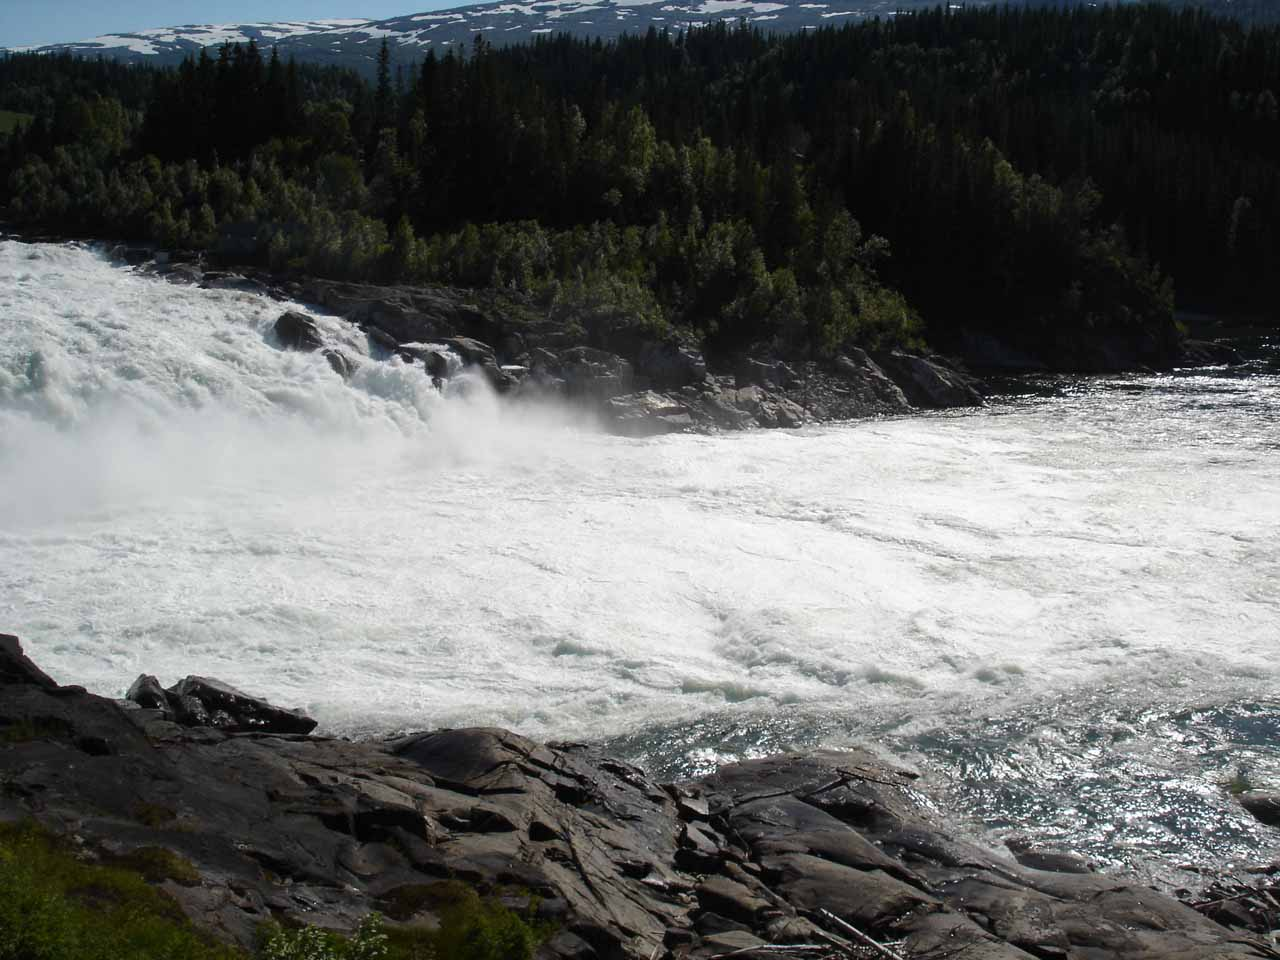 Looking to the frothy base of Laksforsen